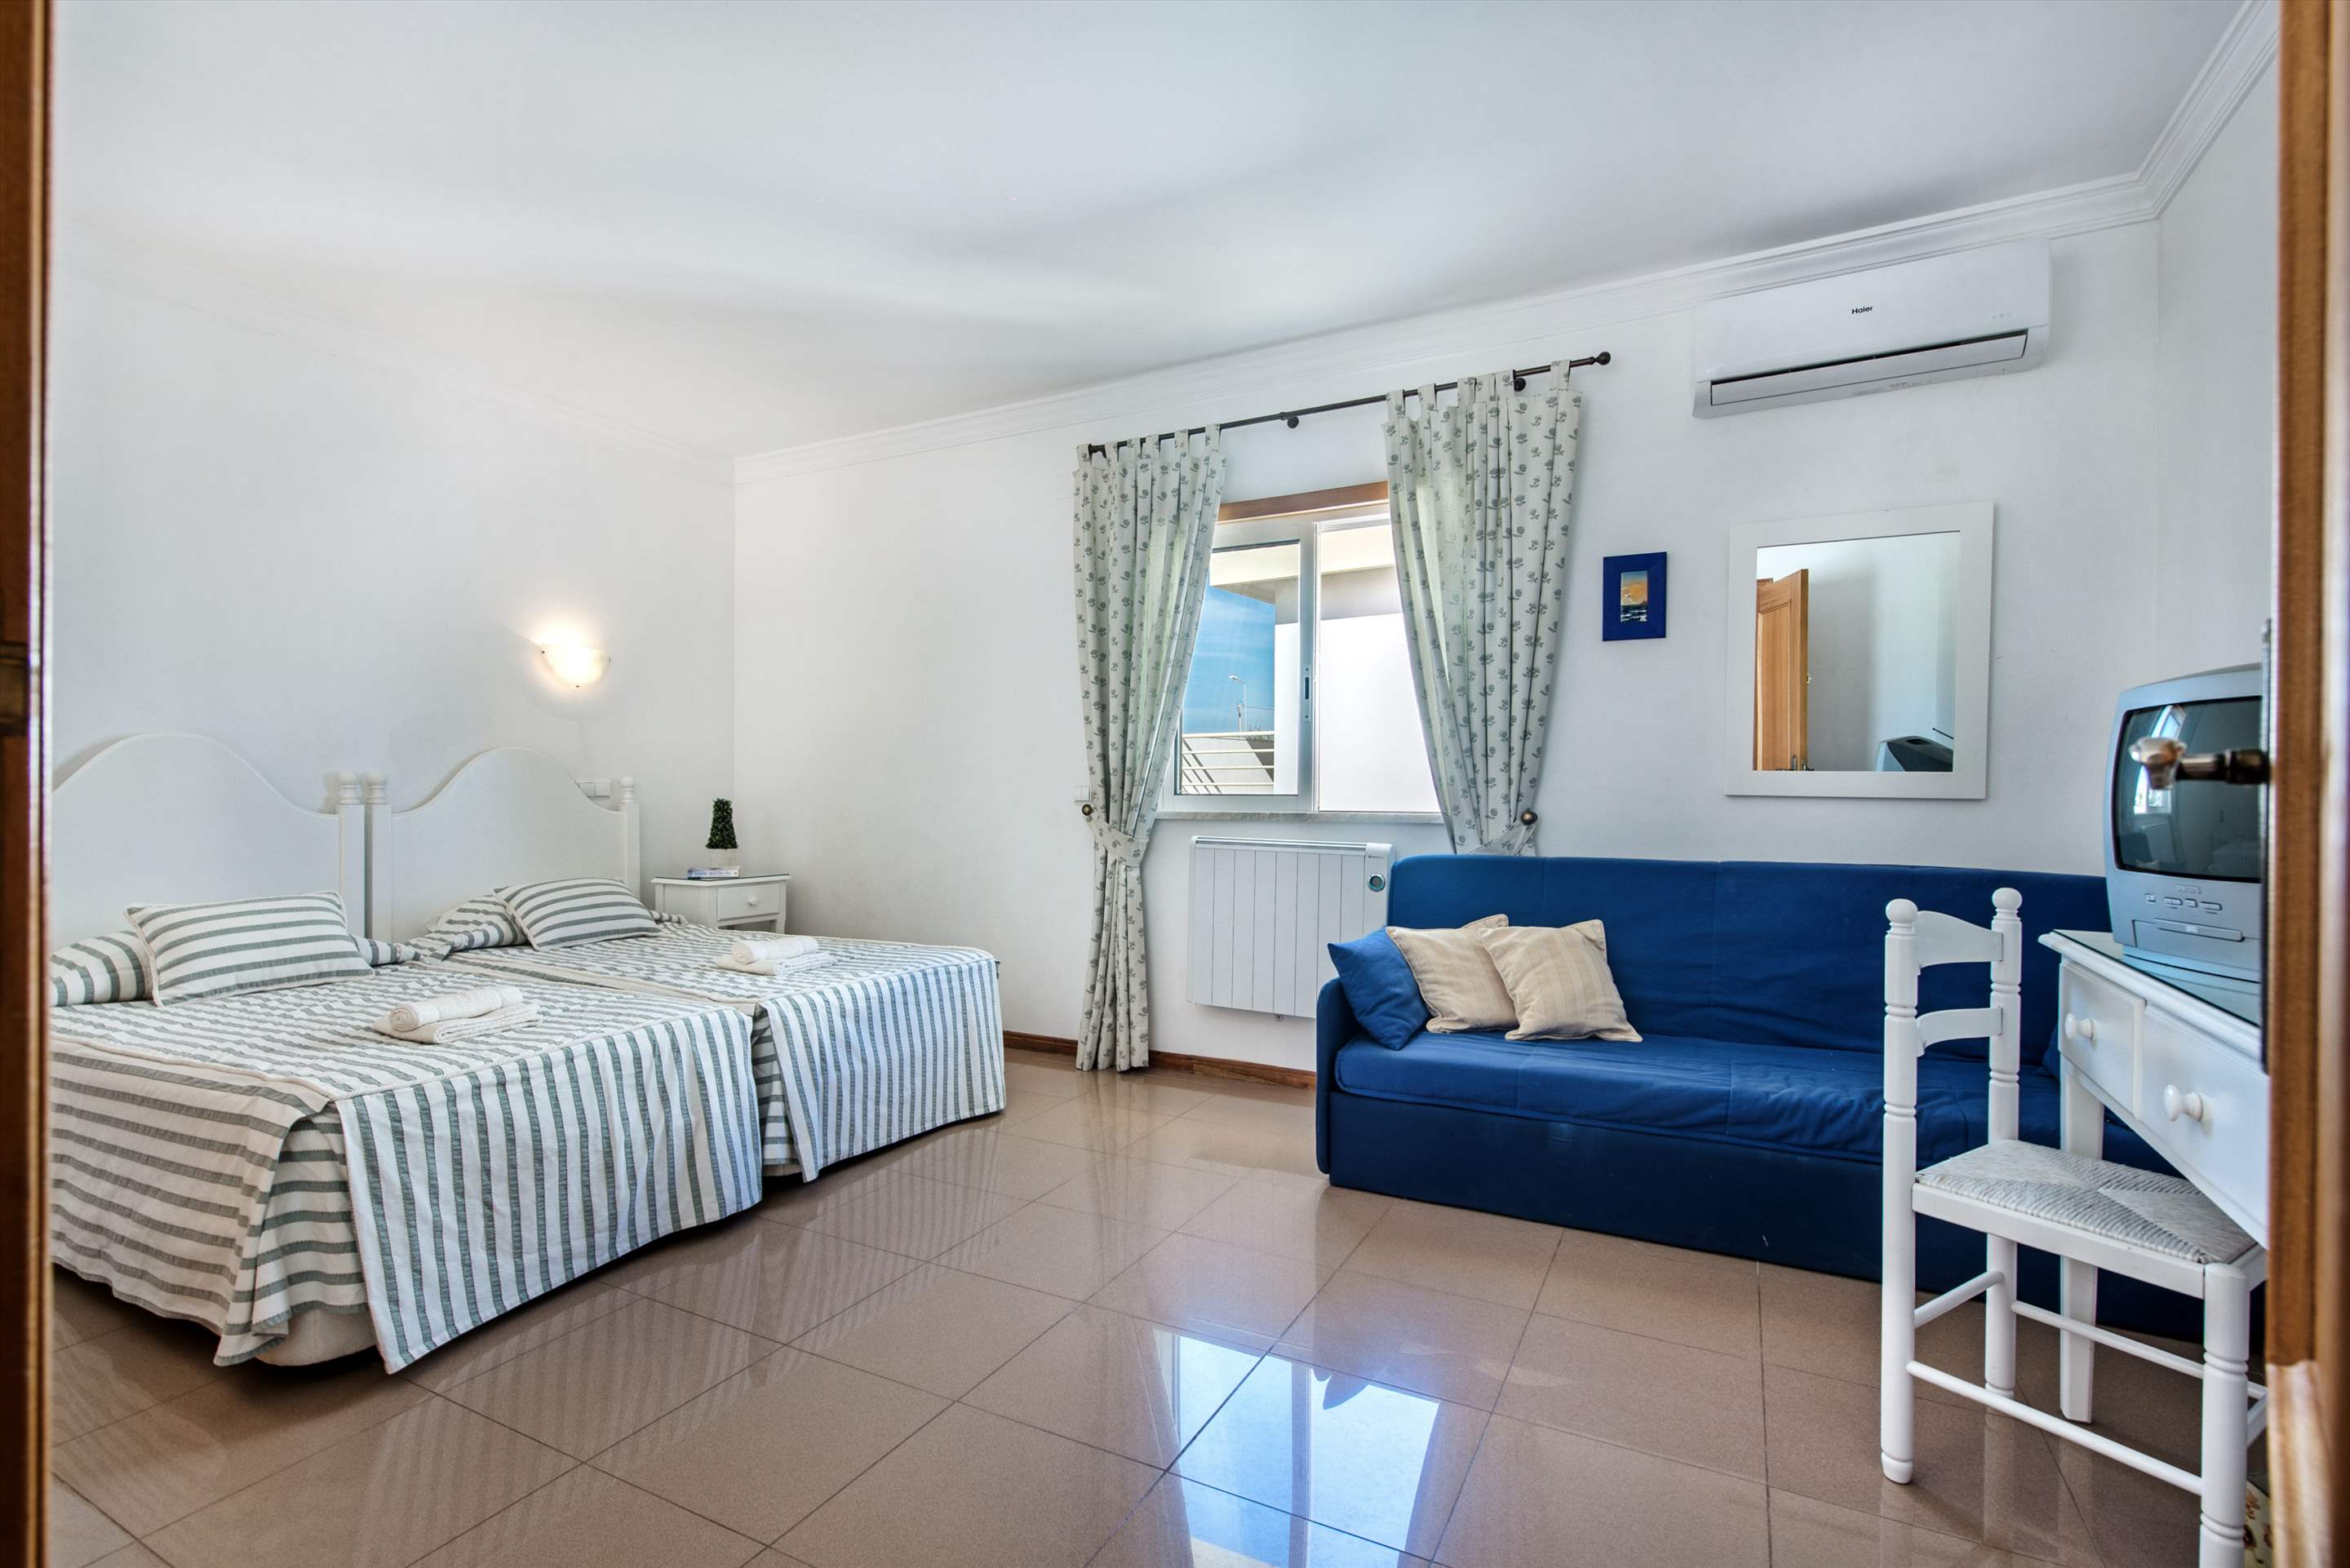 Apt 1E Gale Garden, For 5-6 Persons, 3 bedroom apartment in Gale, Vale da Parra and Guia, Algarve Photo #16